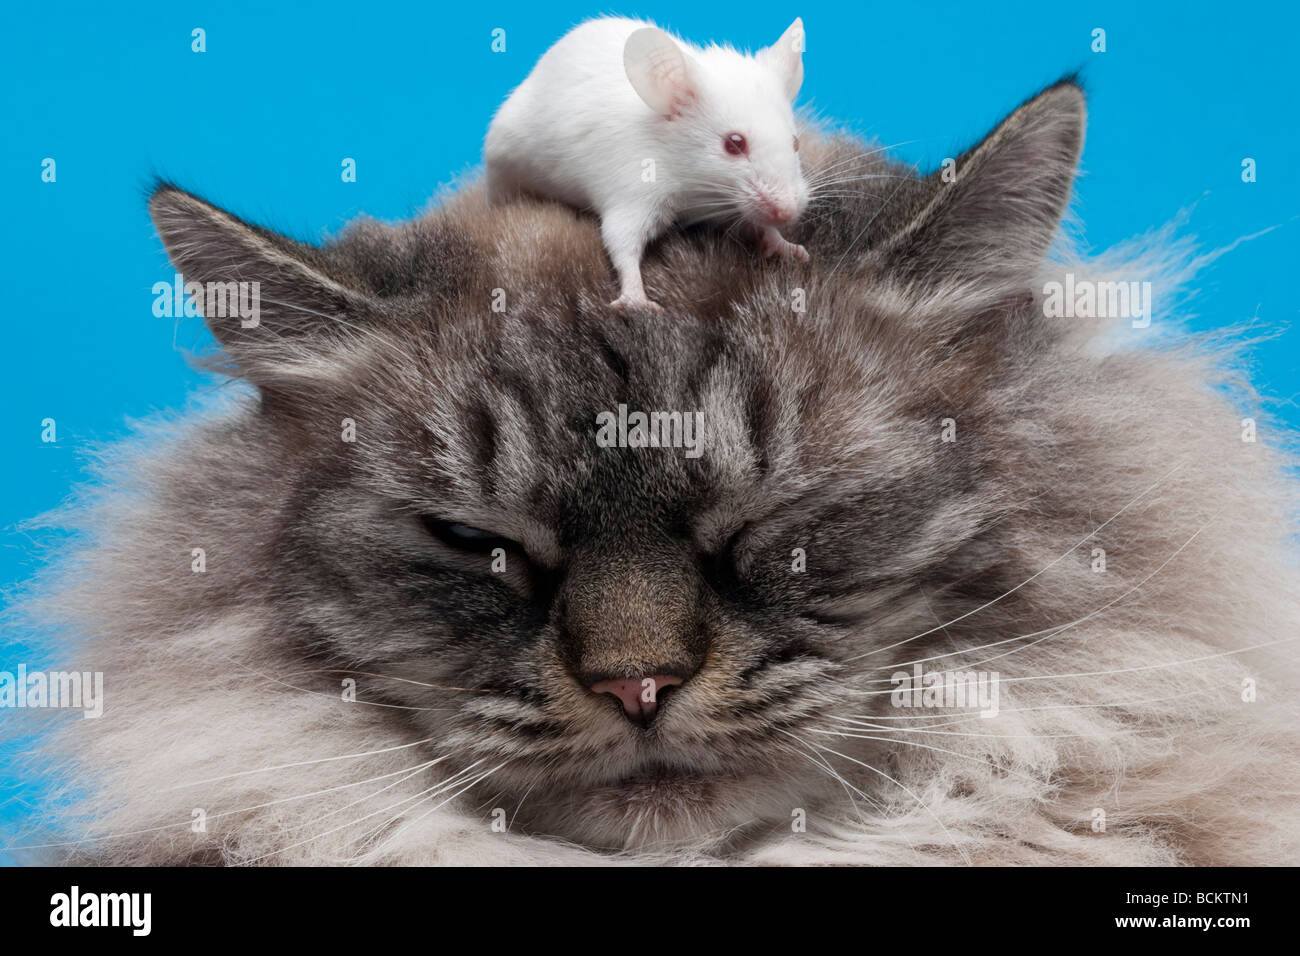 Mouse on top of cat's head - Stock Image